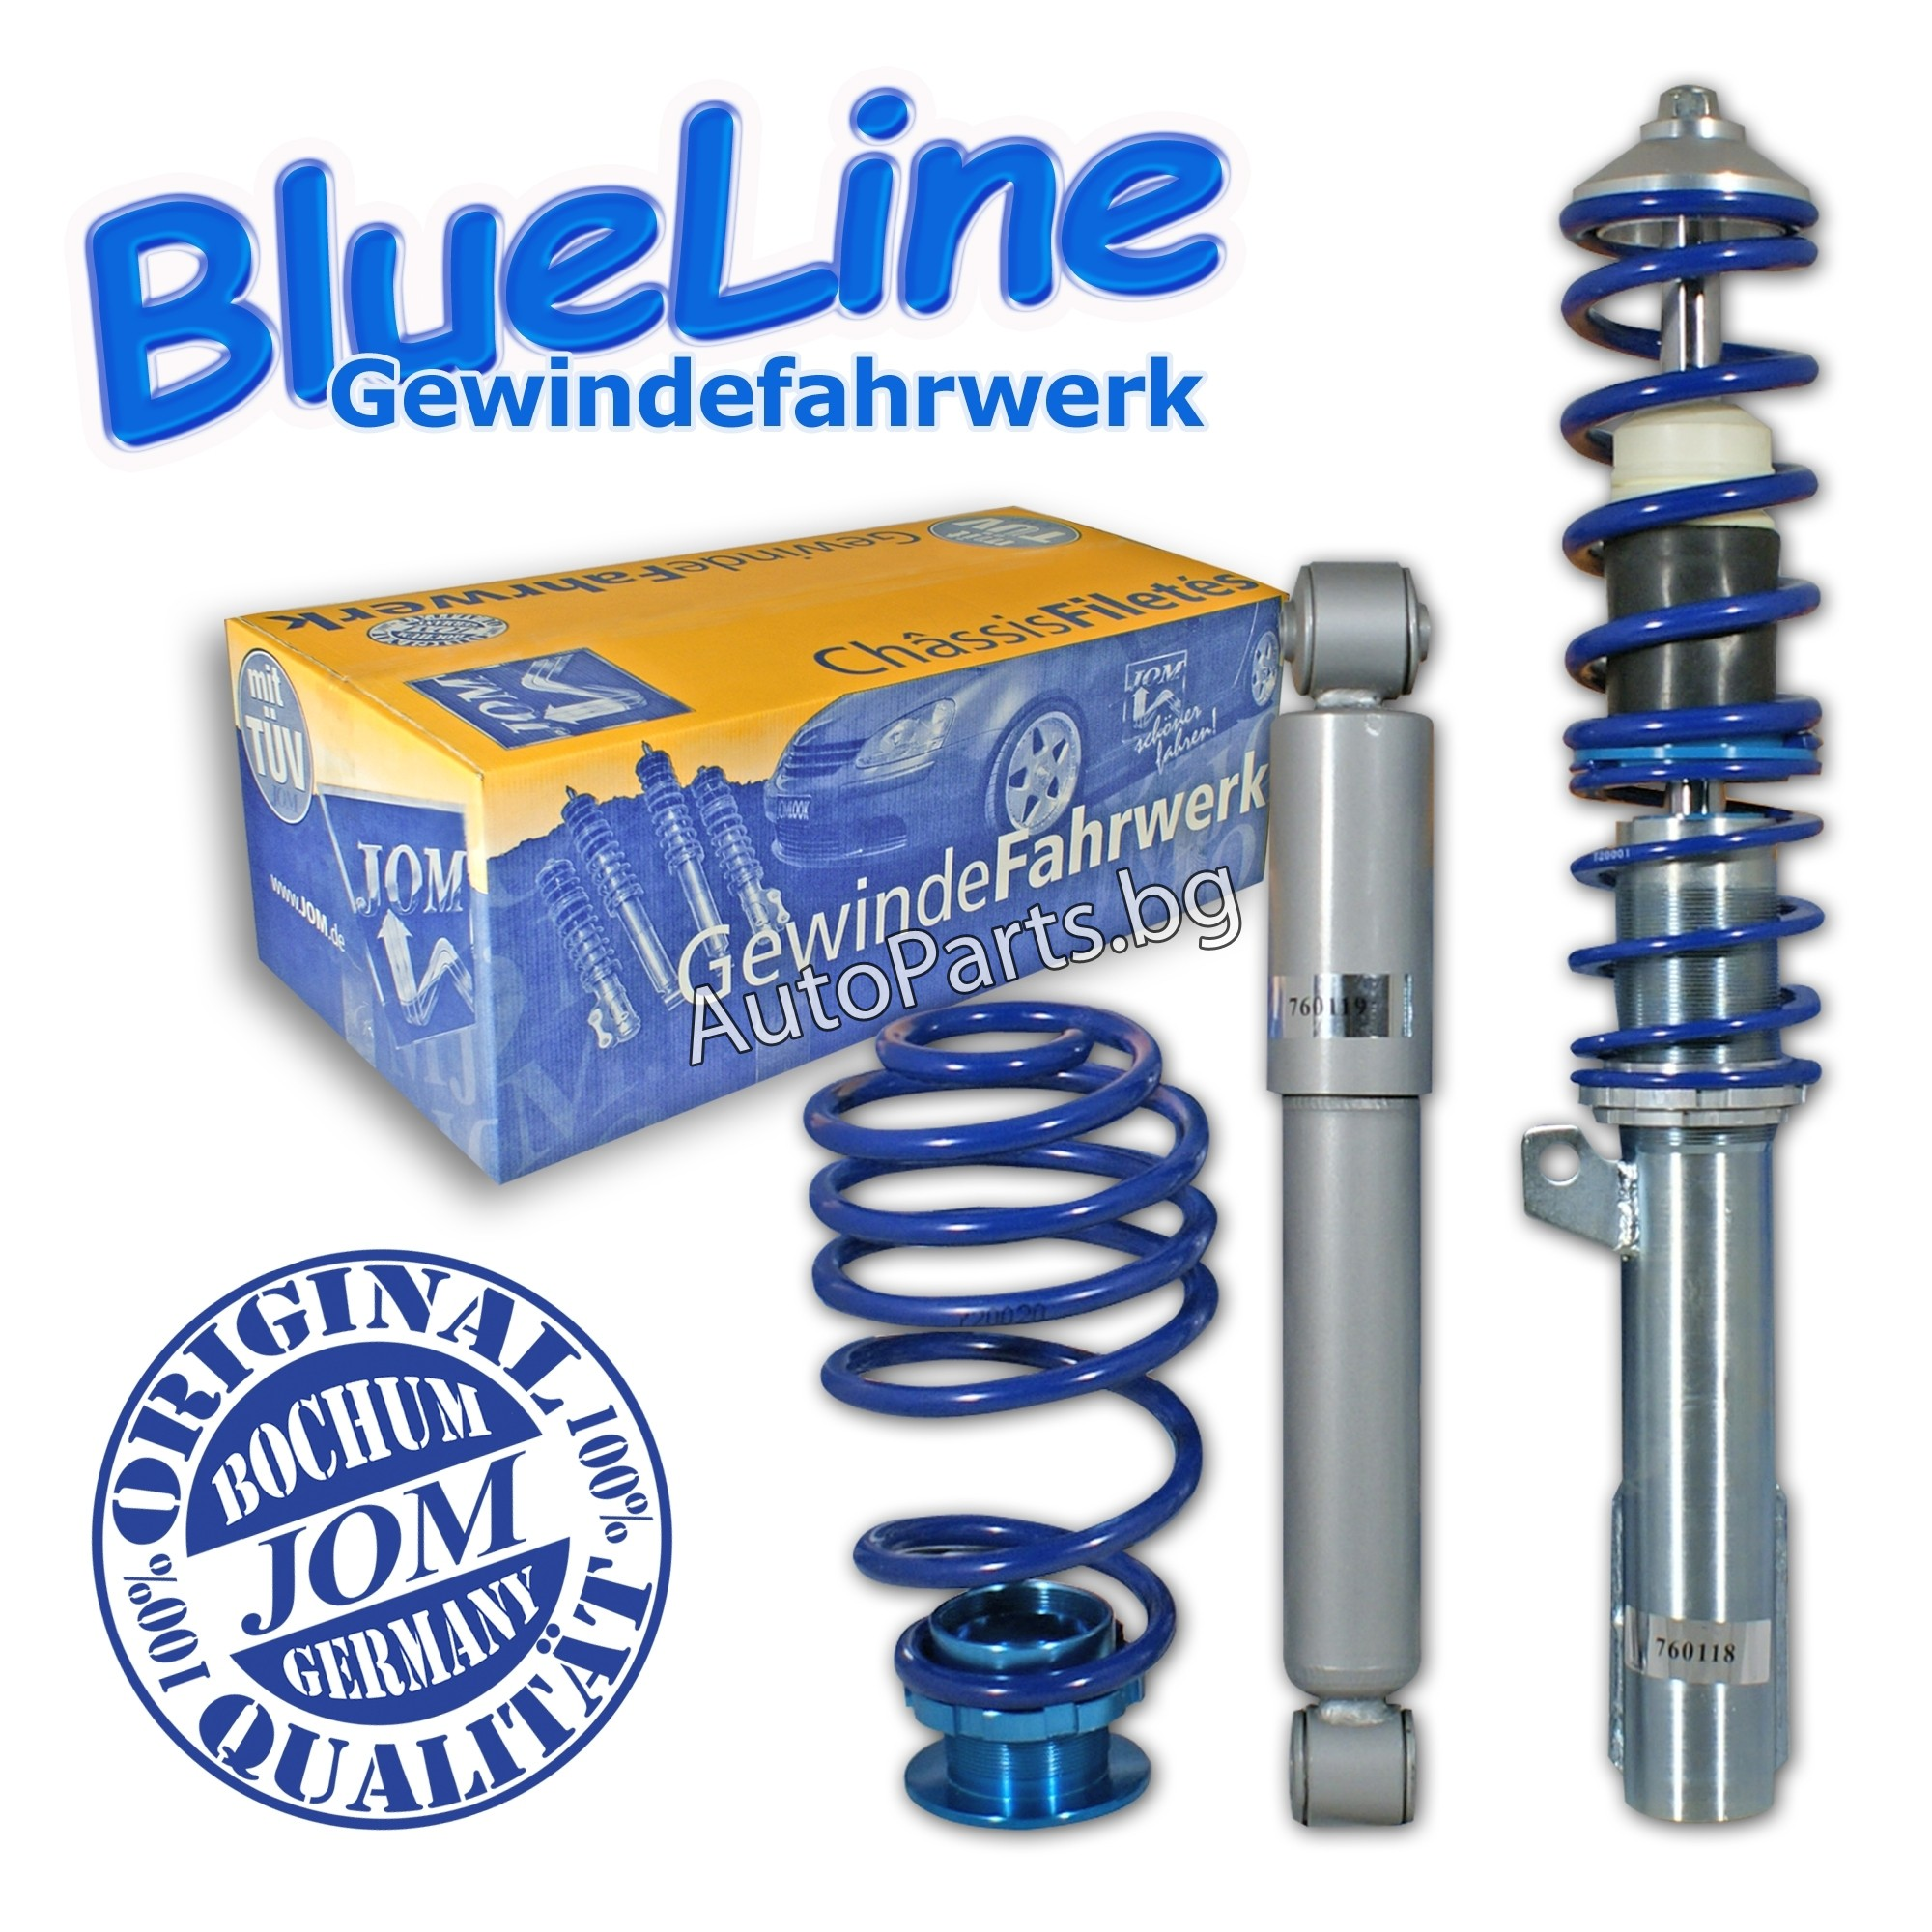 Регулируемо окачване Coilovers за OPEL ASTRA G 98-04